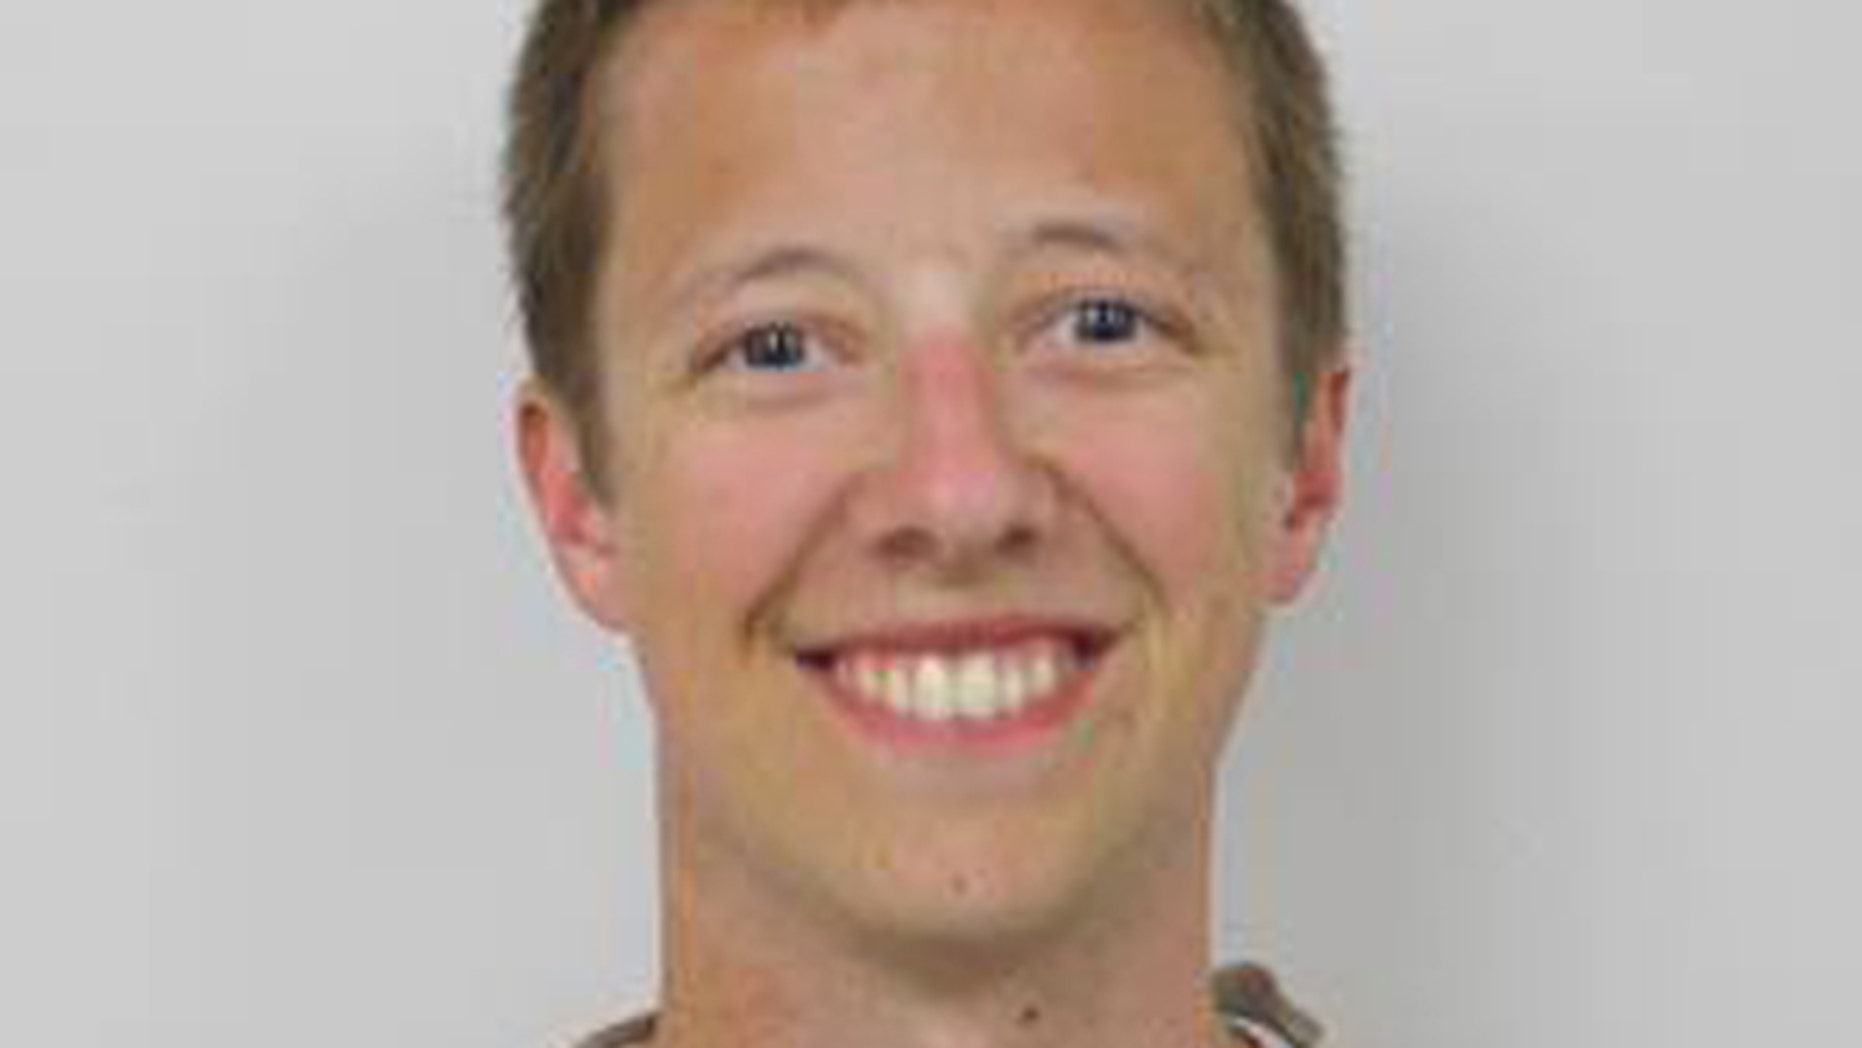 June 6: The body of BYU student Tyler Mayle has been found during a massive search.